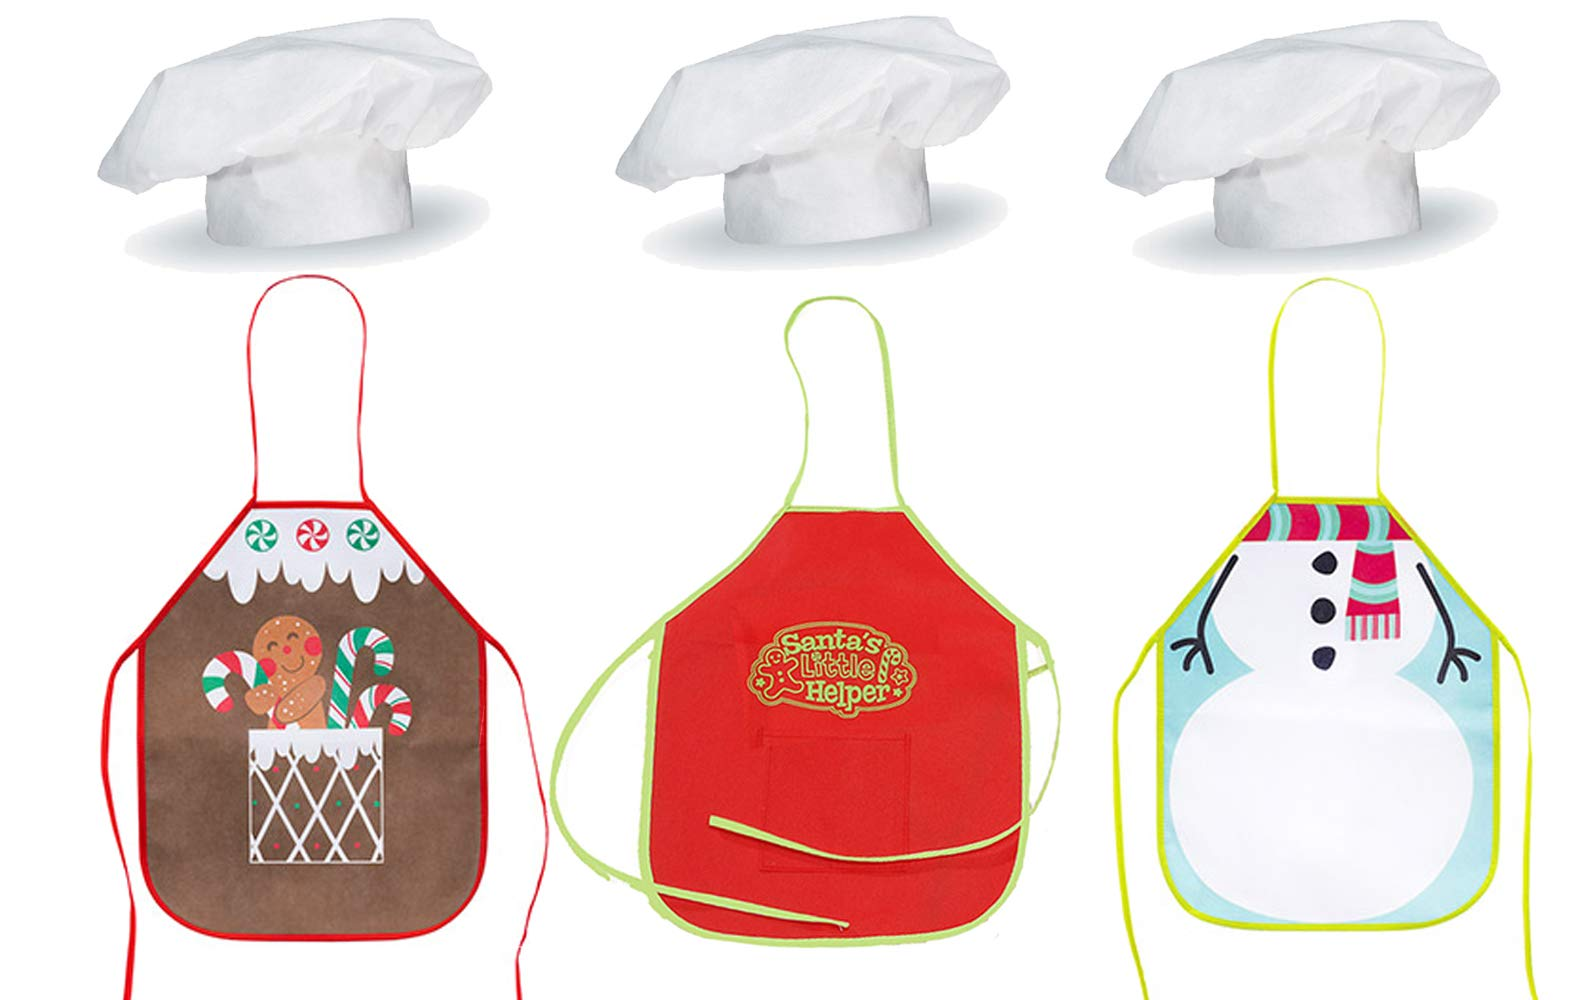 LightShine Products 3 Sets Kids Christmas Gingerbread & Elf Aprons with Chef Hats Bundle for Gingerbread House Crafting Christmas Cookie Decorating or Holiday Baking (6 Pieces) by LightShine Products